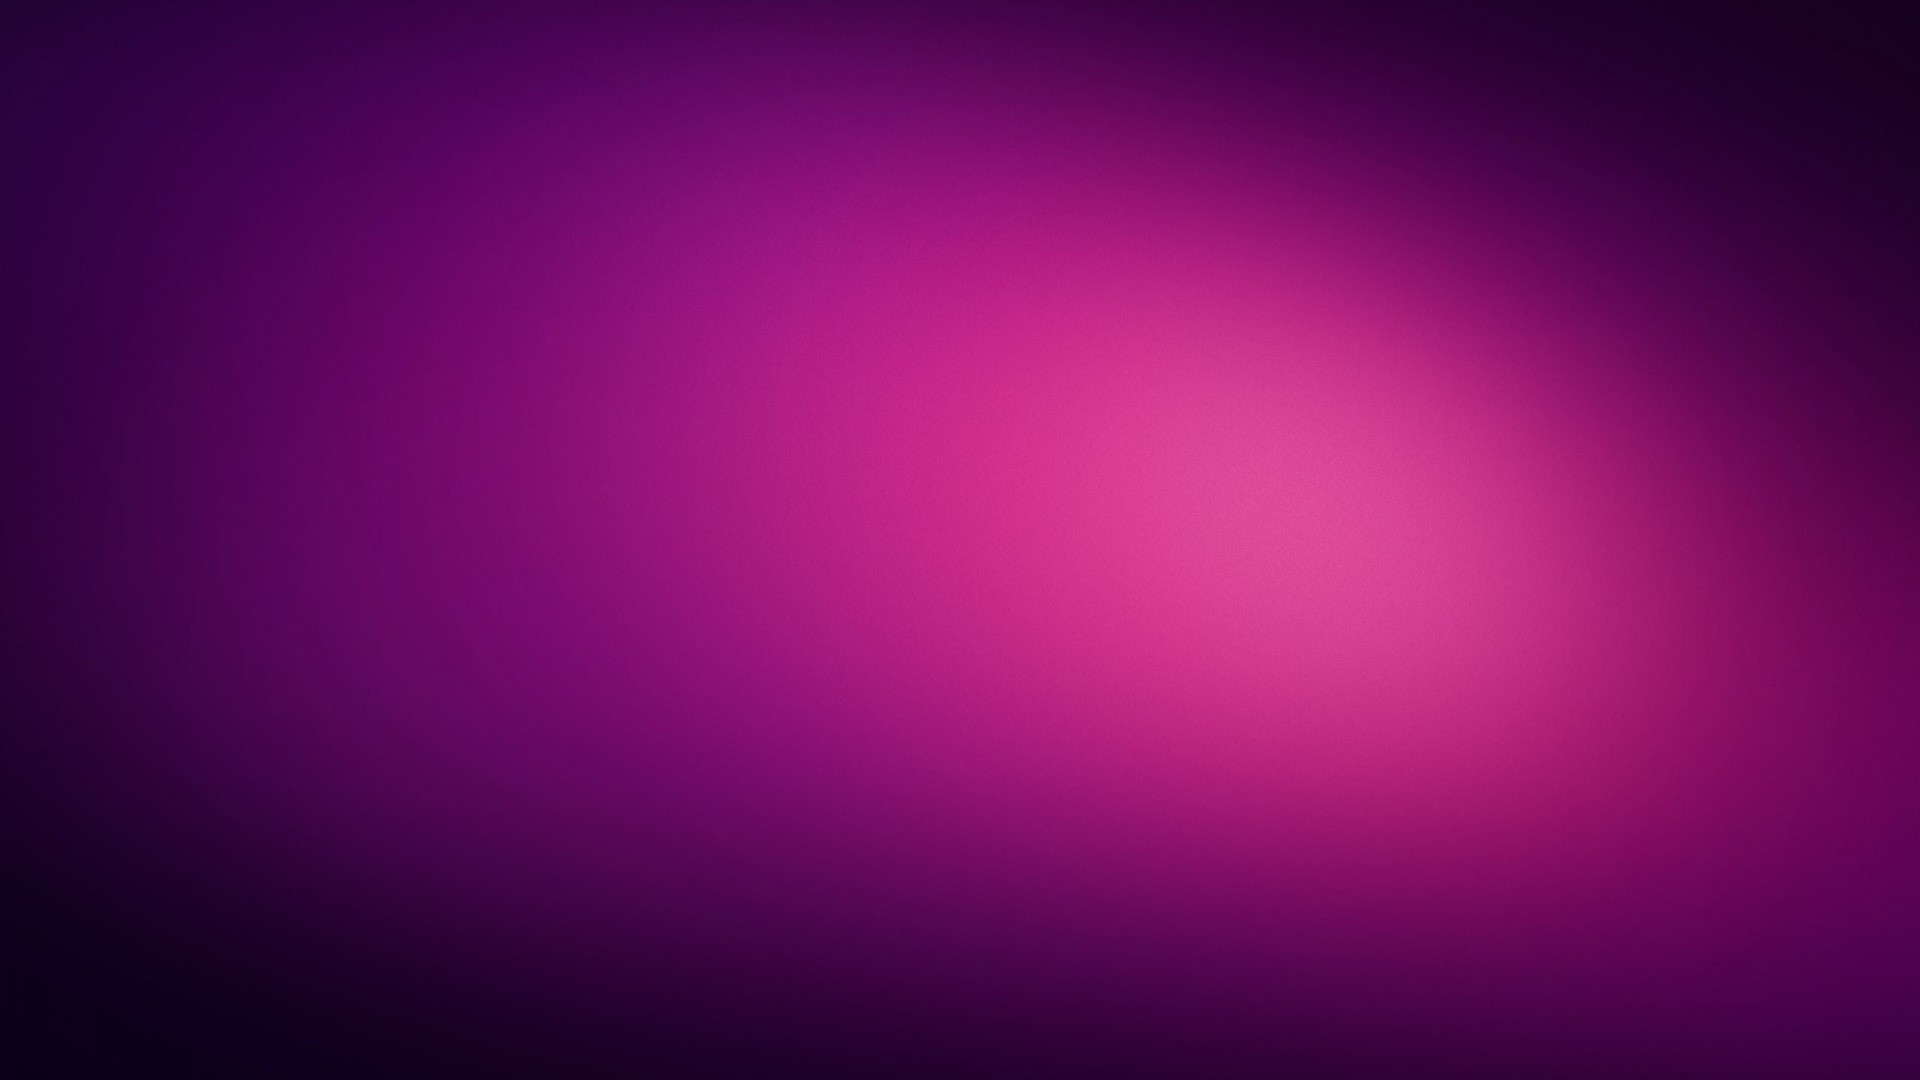 Violet Color Background   Wallpaper High Definition High Quality 1920x1080